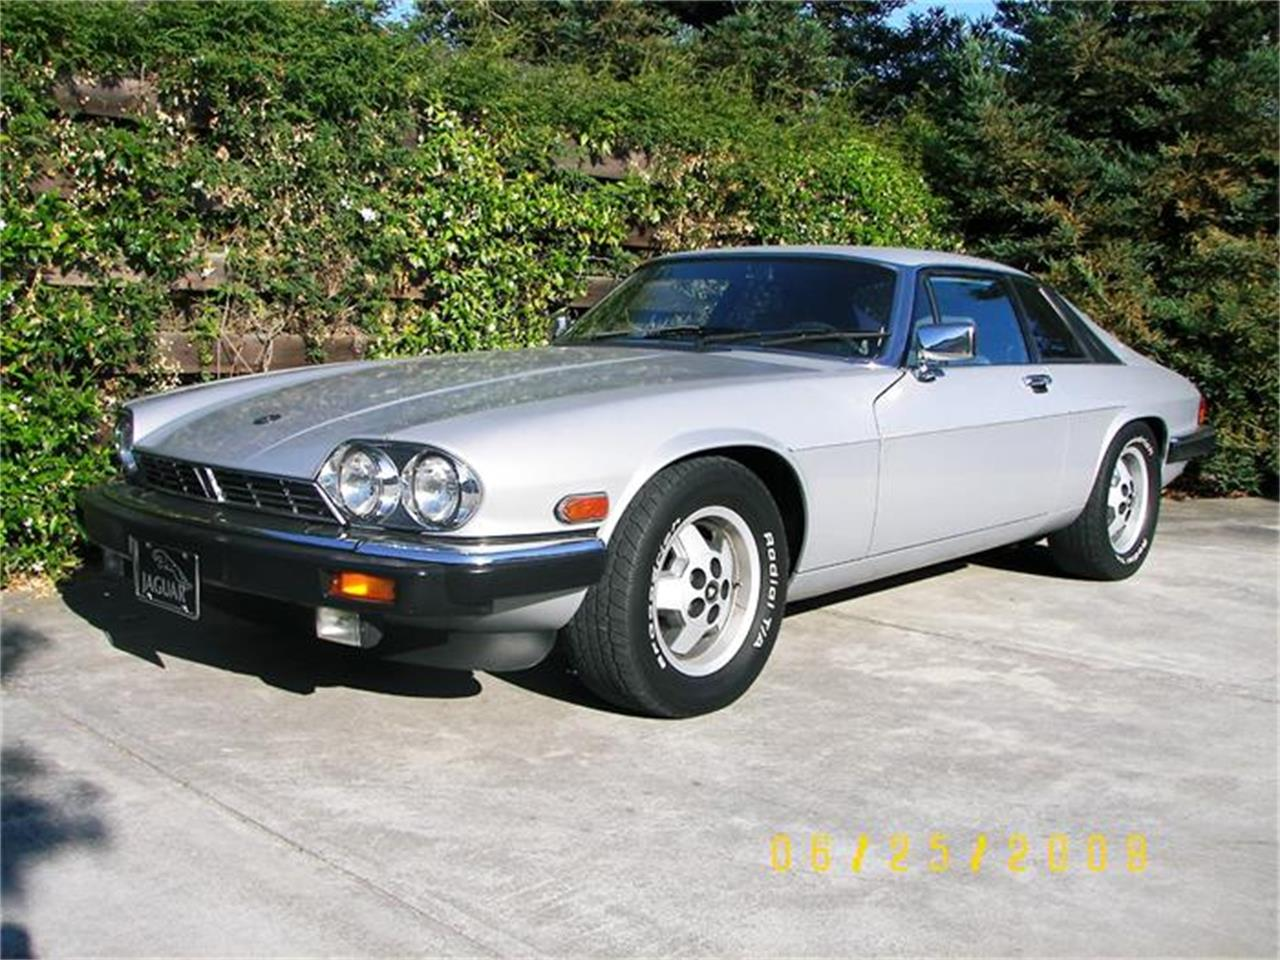 Large Picture of '85 Jaguar XJS - $7,500.00 Offered by a Private Seller - 2YG4